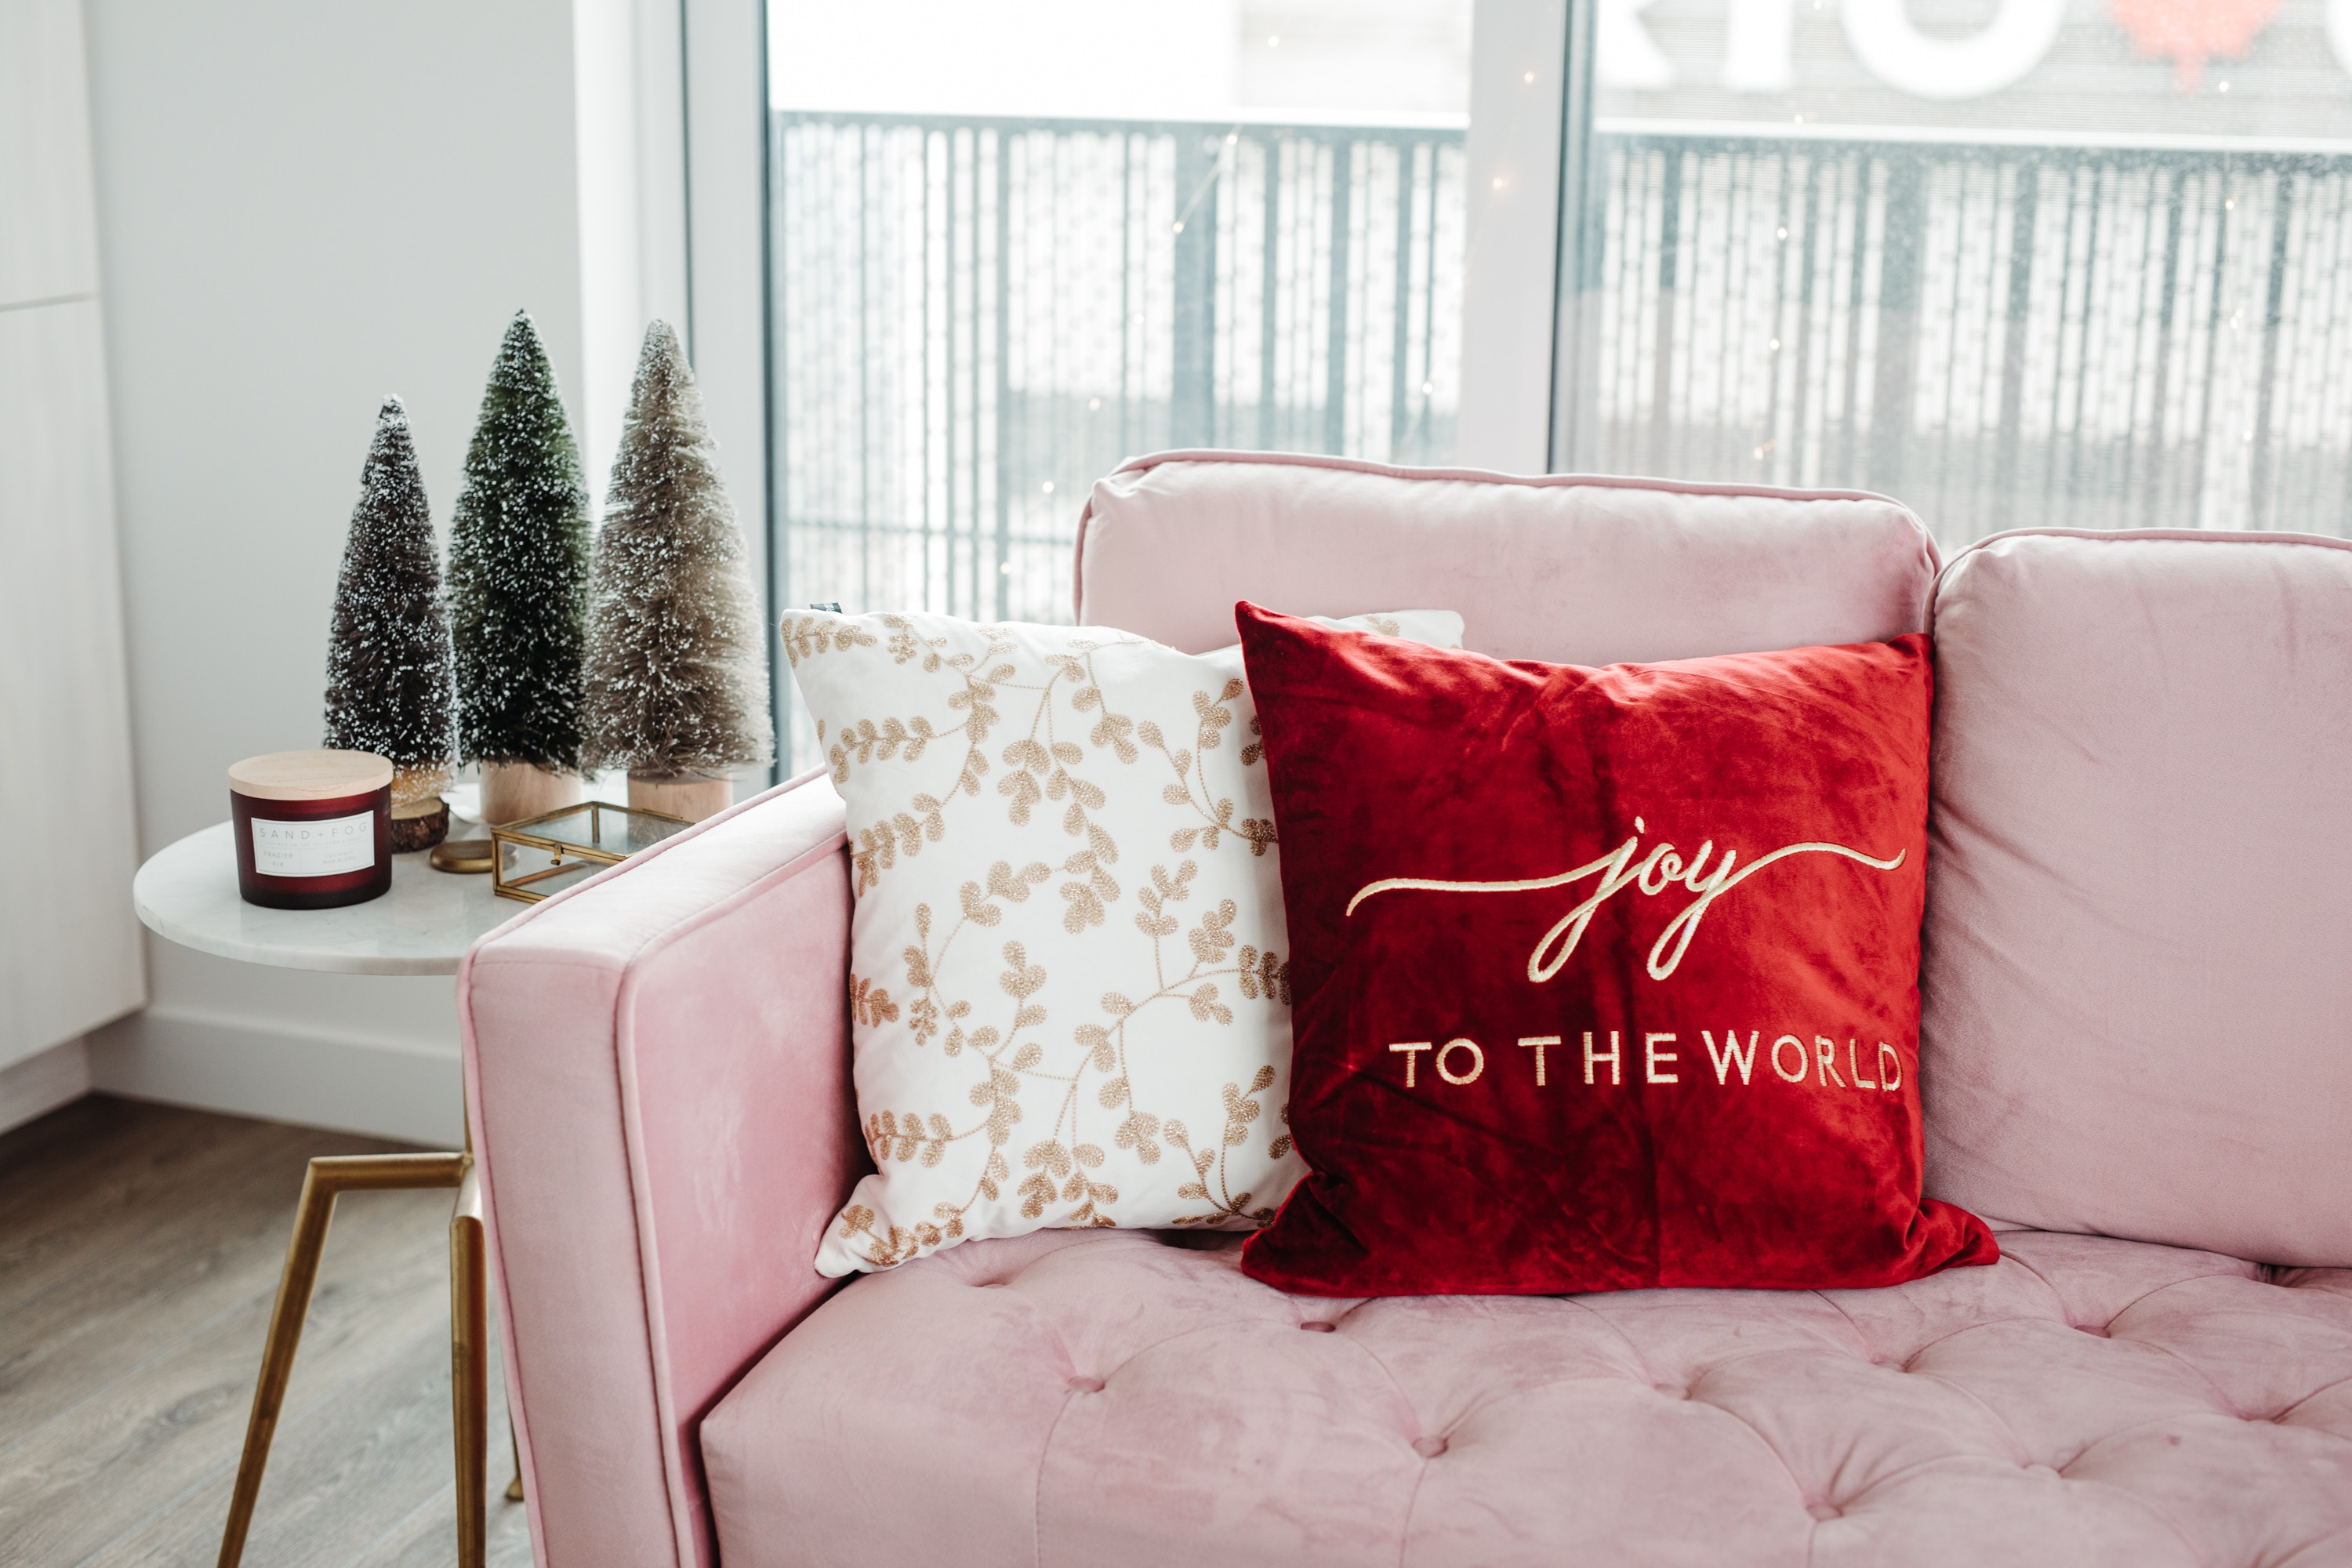 Joy to the World pillow, white and gold embroidered couch cushion